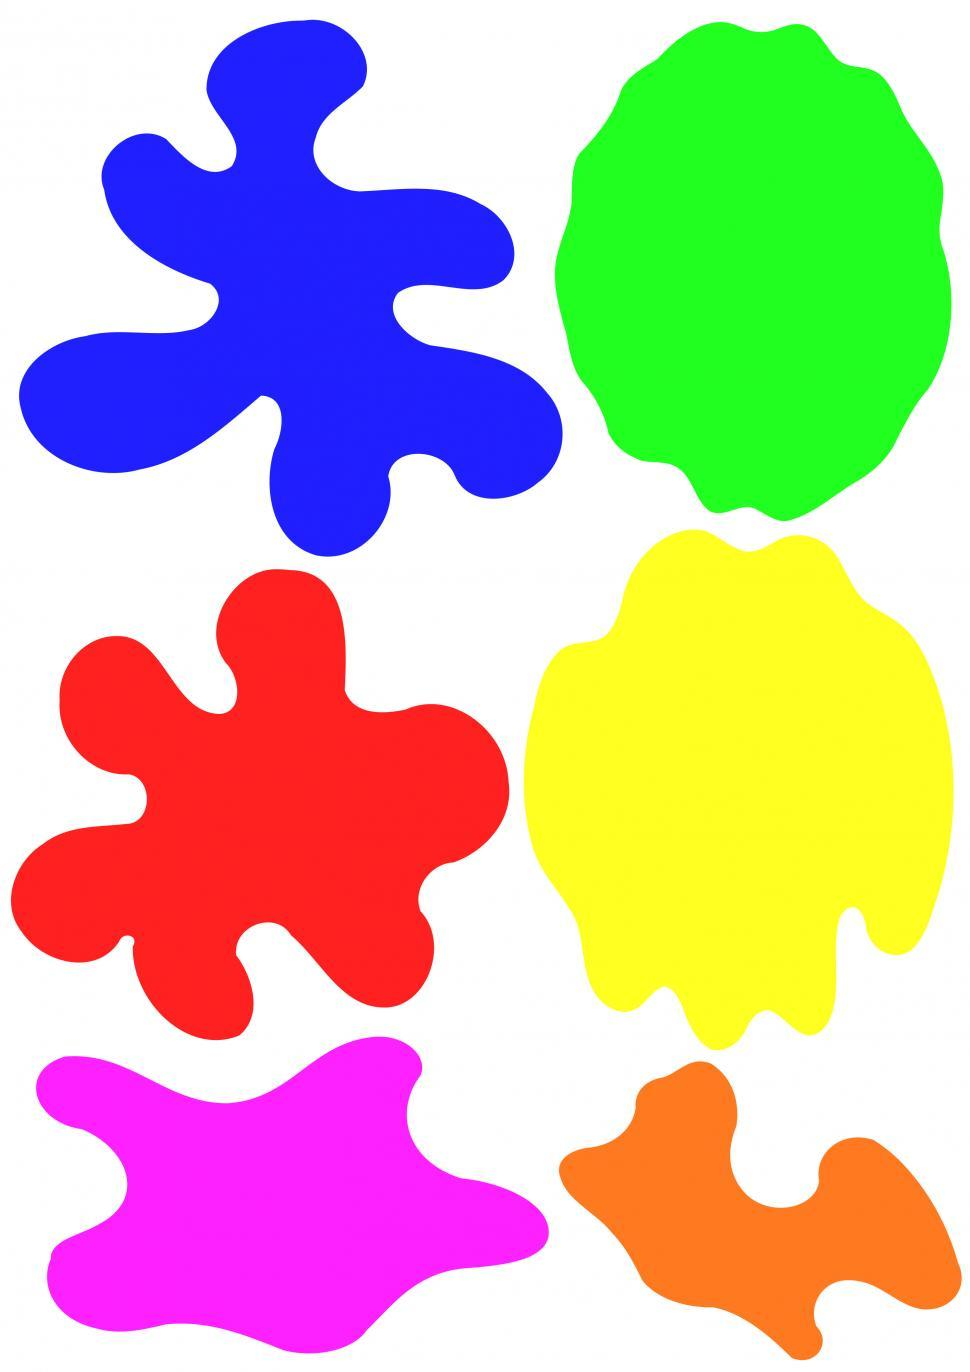 Download Free Stock HD Photo of Colorful different shapes blobs on white background  Online